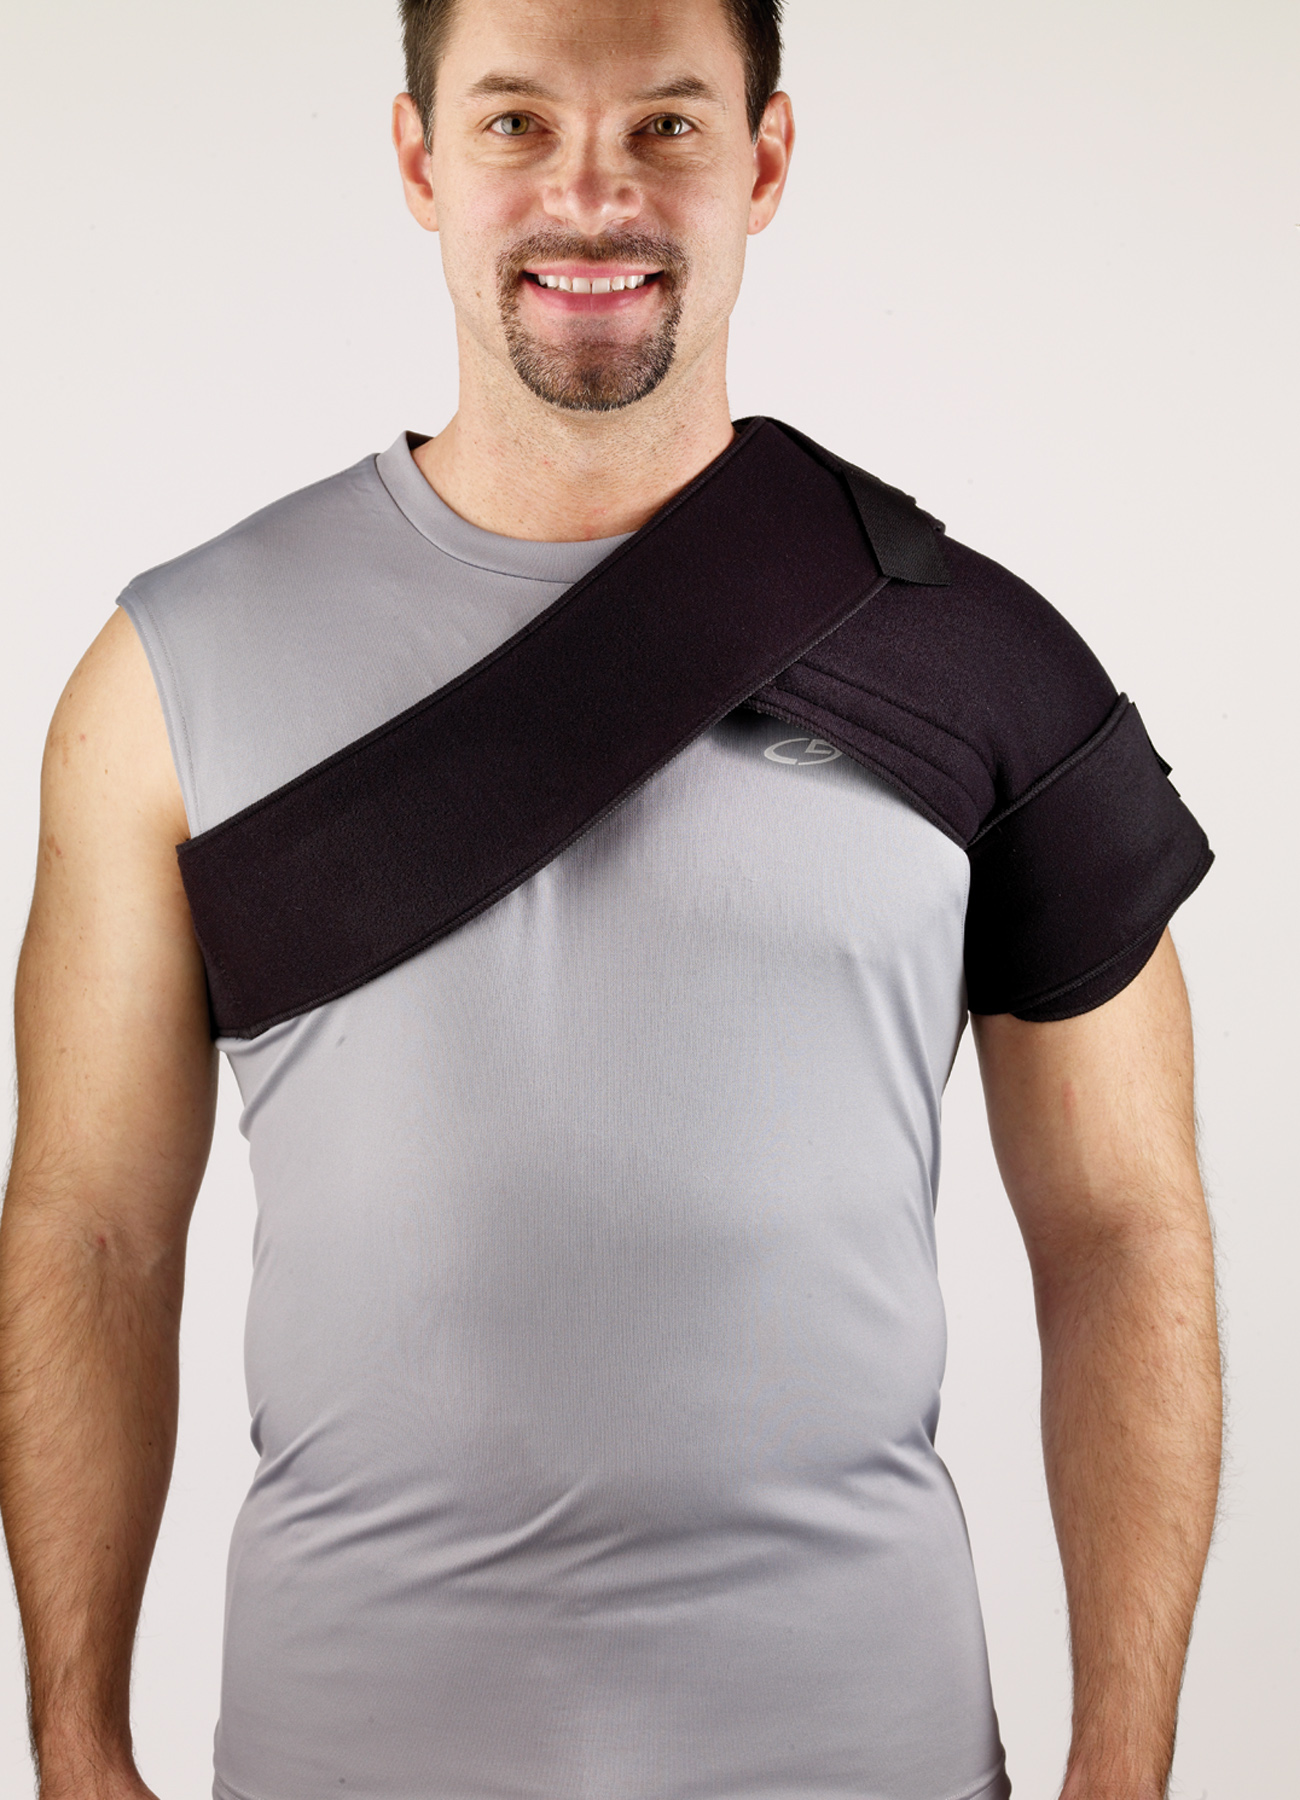 Cryotherm Shoulder Wrap